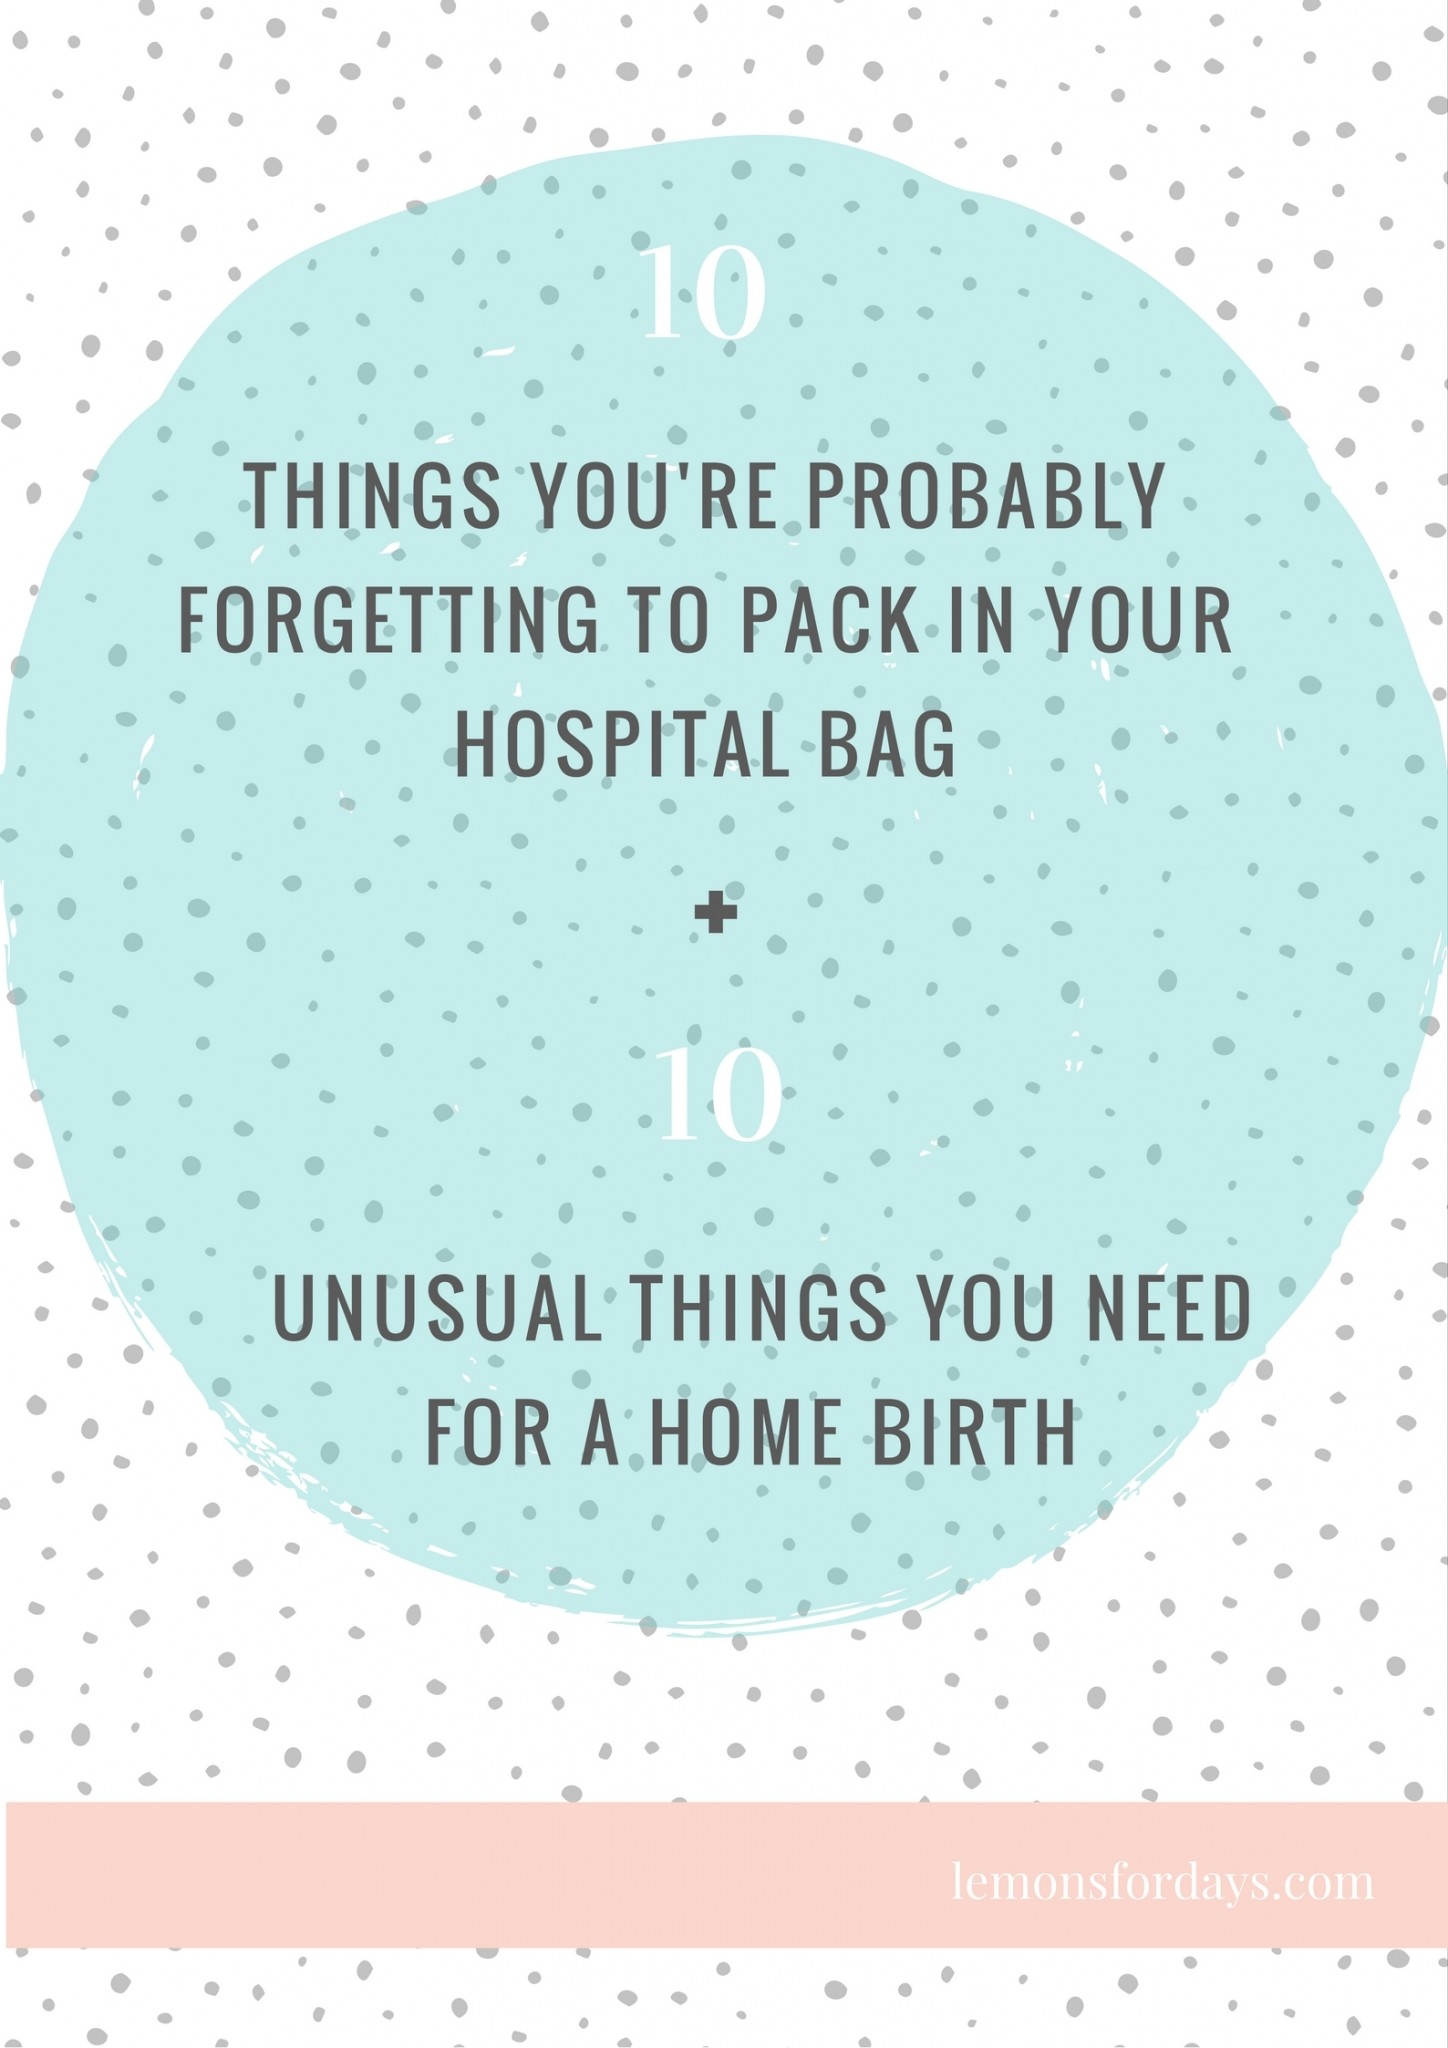 Labour Checklist for hospital & home birth